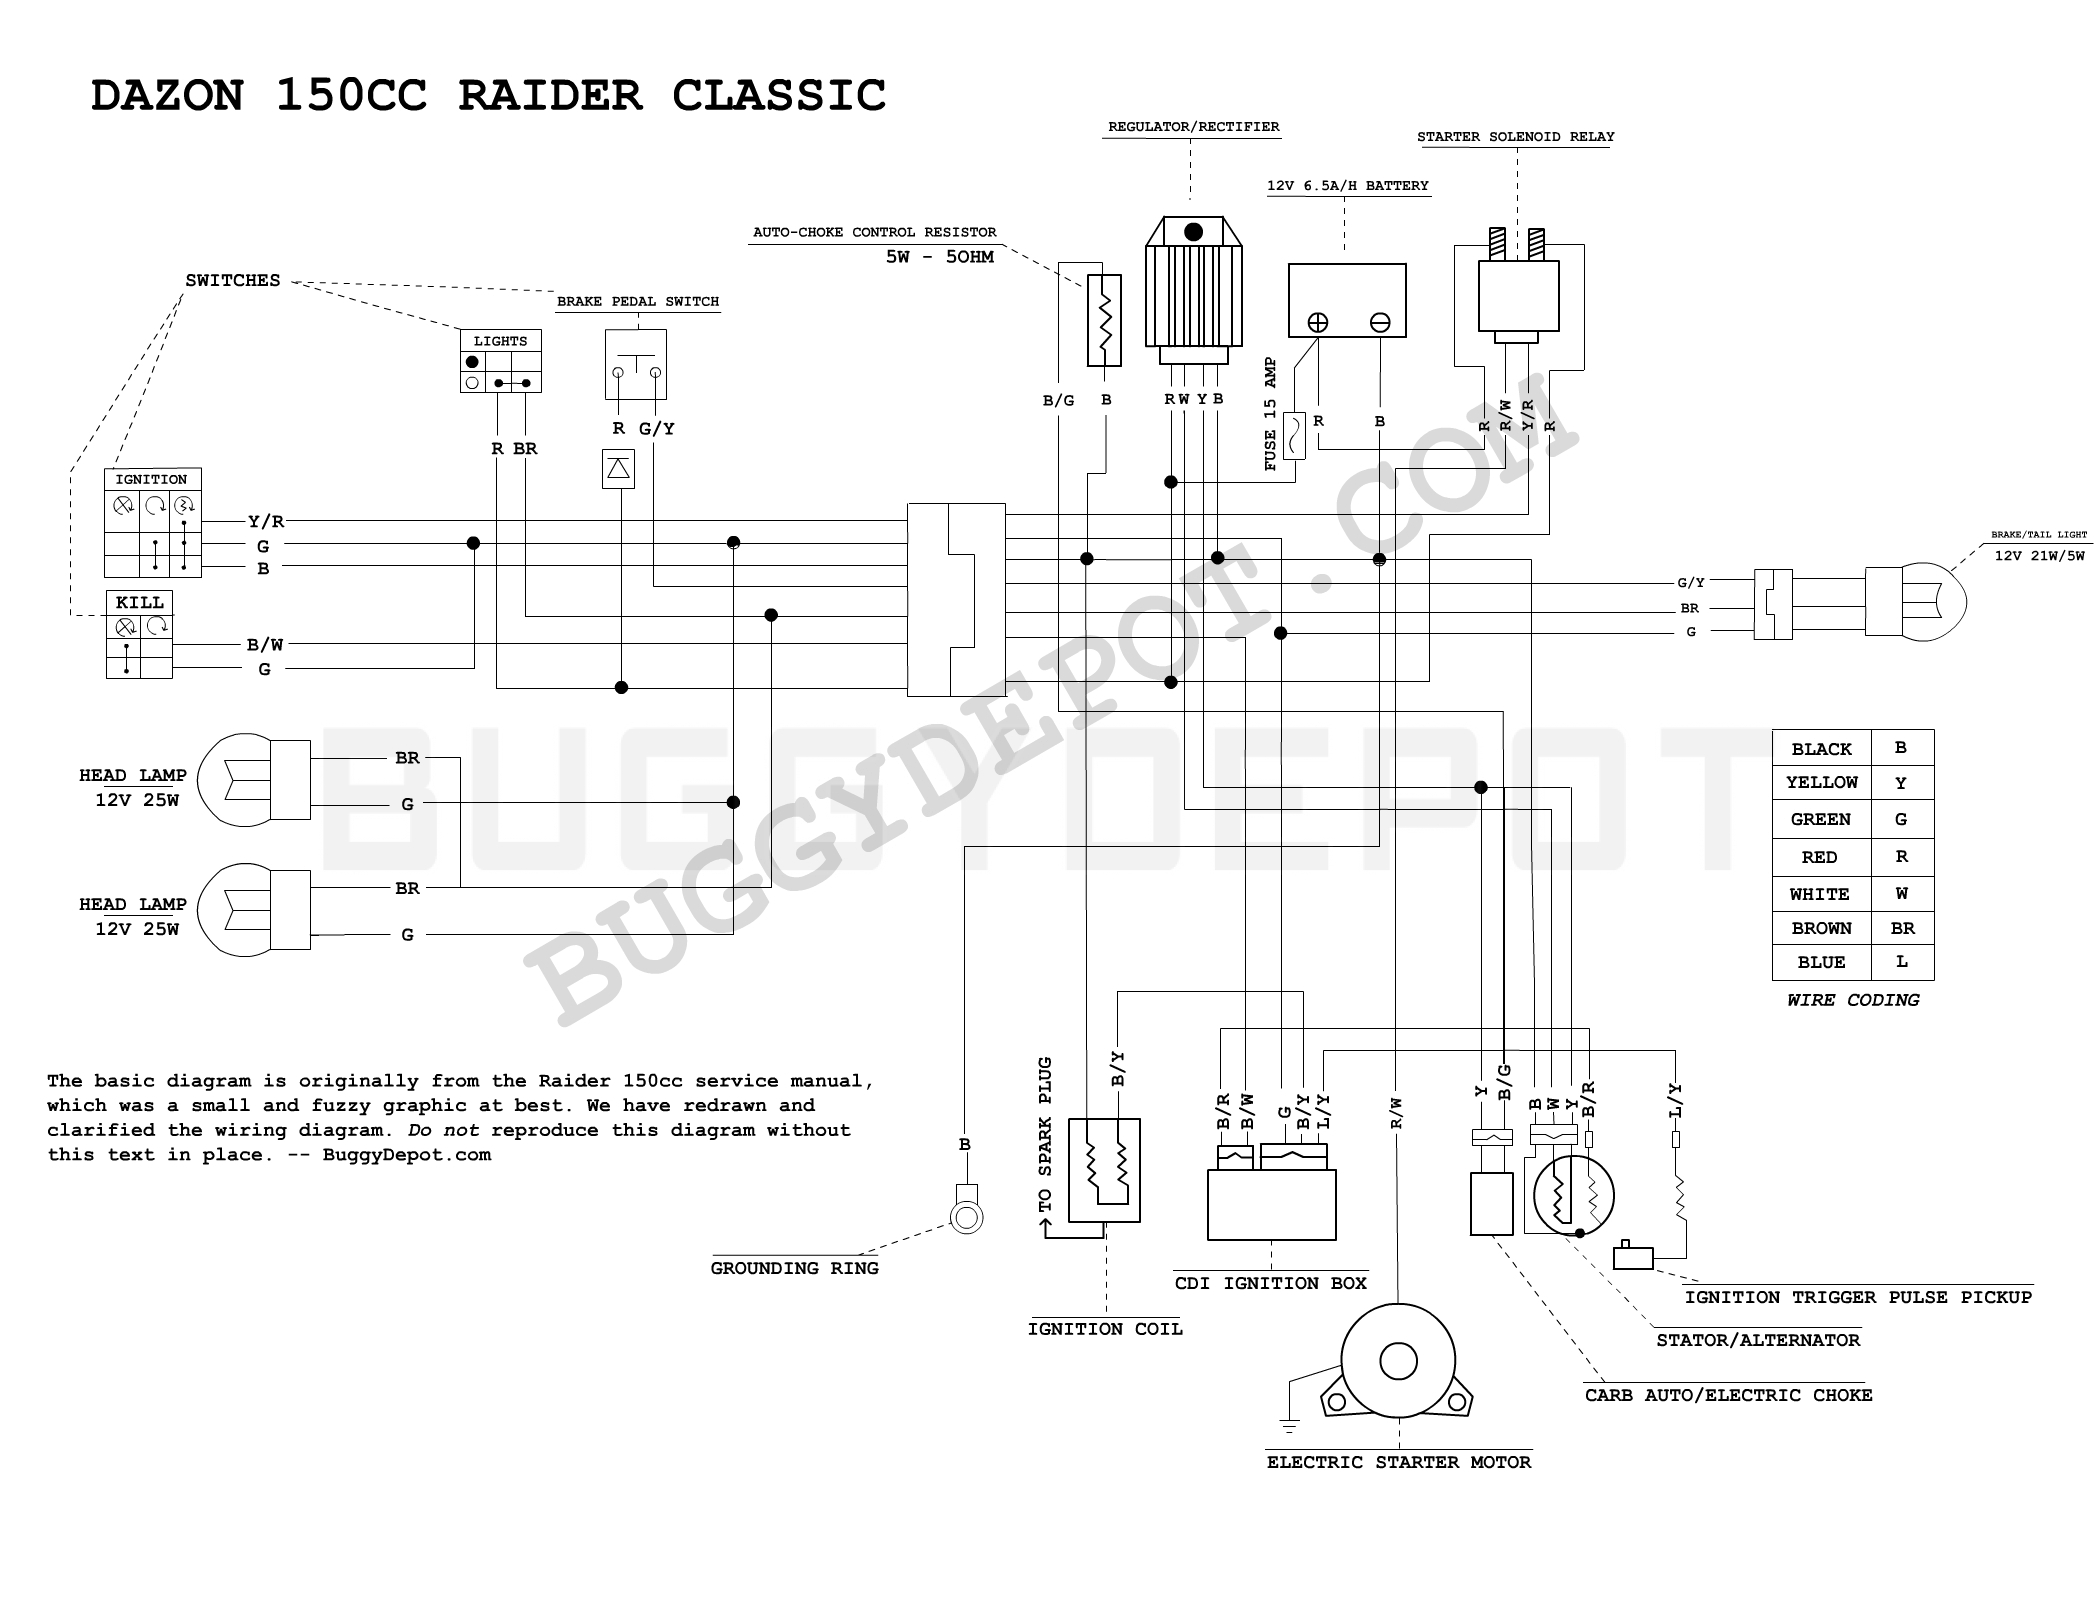 Motobravo Wiring Diagrams Library Pioneer Eq 6500 Diagram Dazon Raider Classic